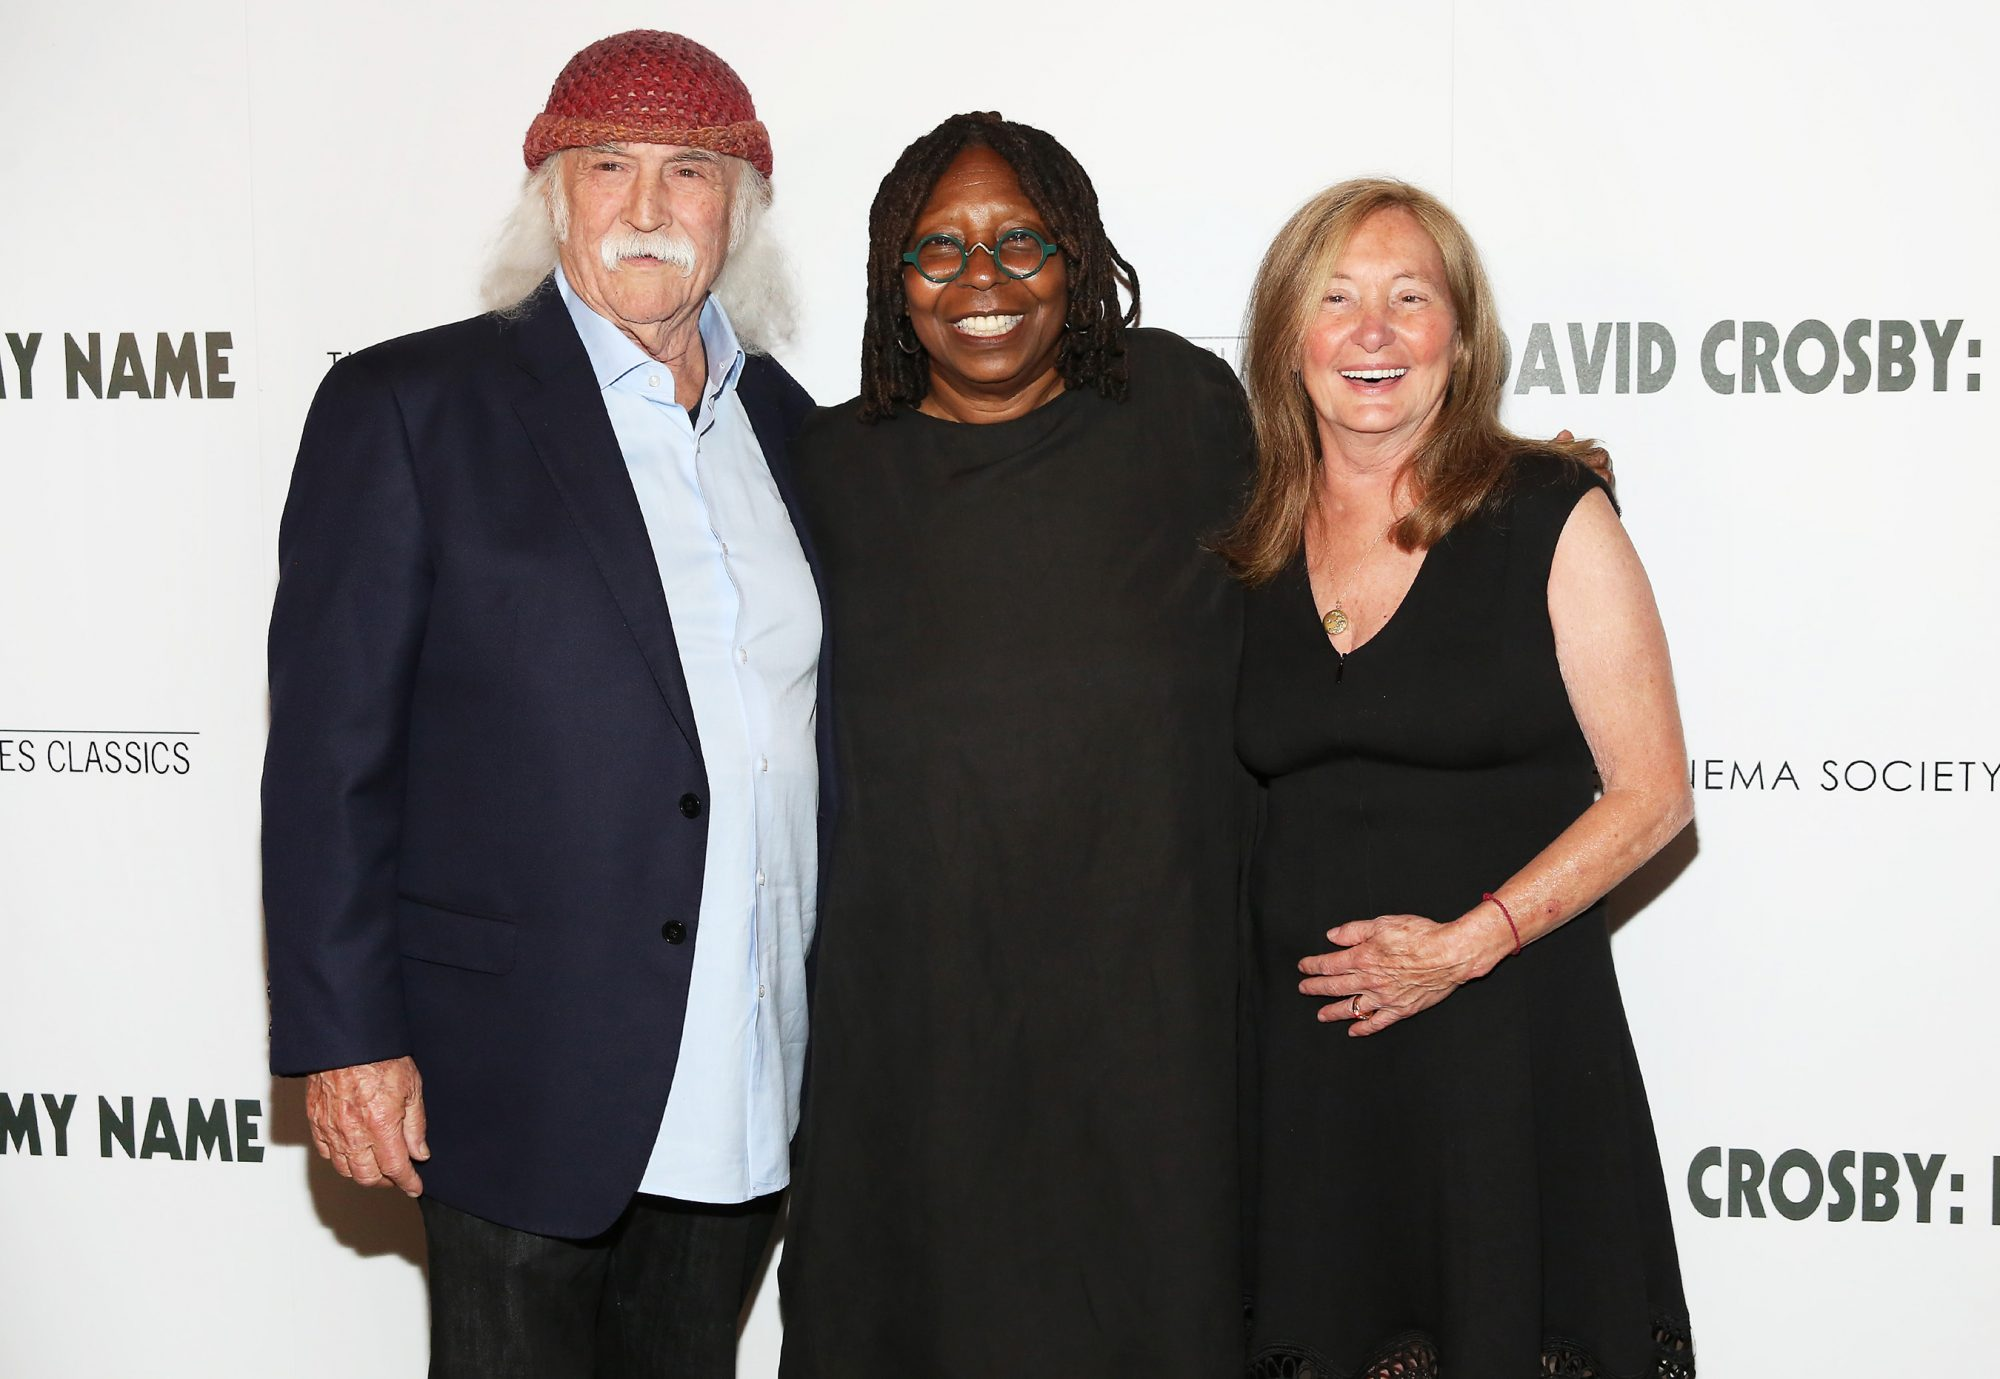 David Crosby, actress Whoopi Goldberg, and Jan Dance